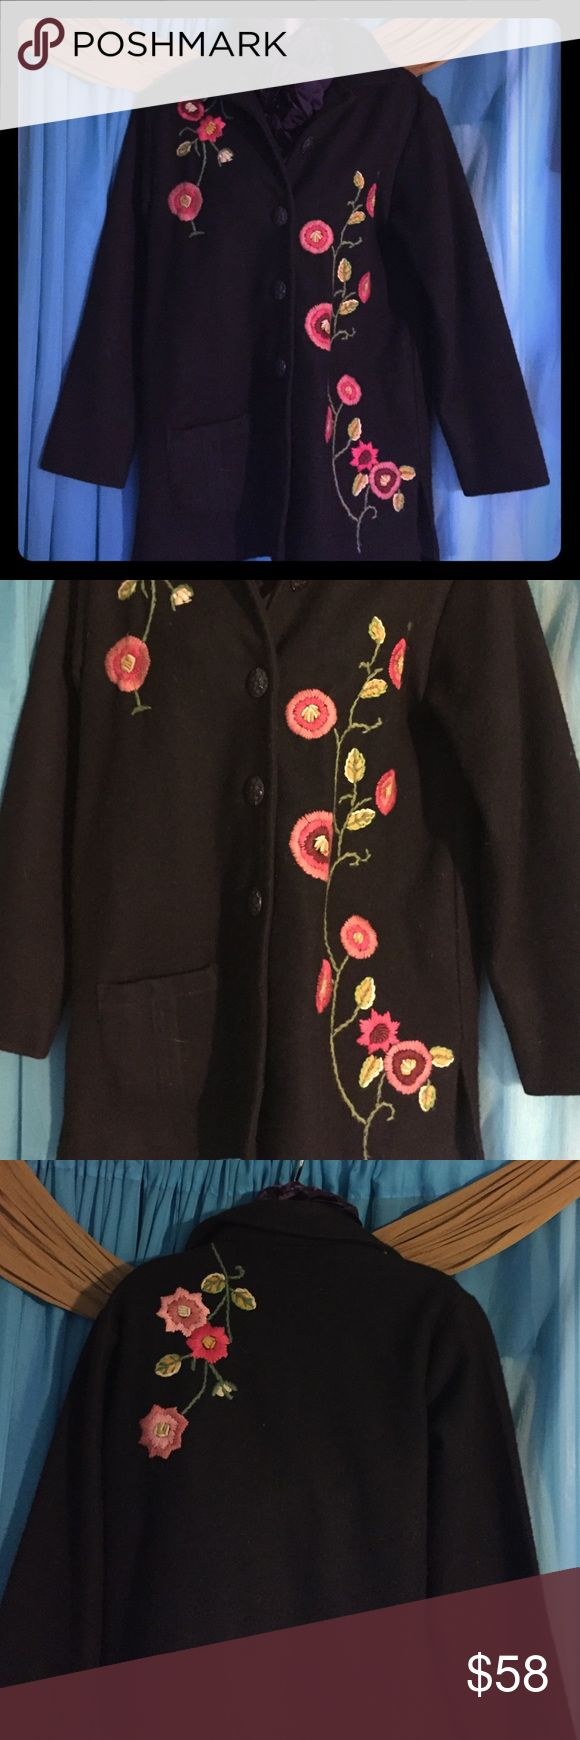 PARSLEY & SAGE  100% Wool Jacket-Size Small Black 100% wool, lined jacket with floral embellishments and front pocket. Bought at a boutique in Florida. Retails at $265 Parsley&Sage Jackets & Coats